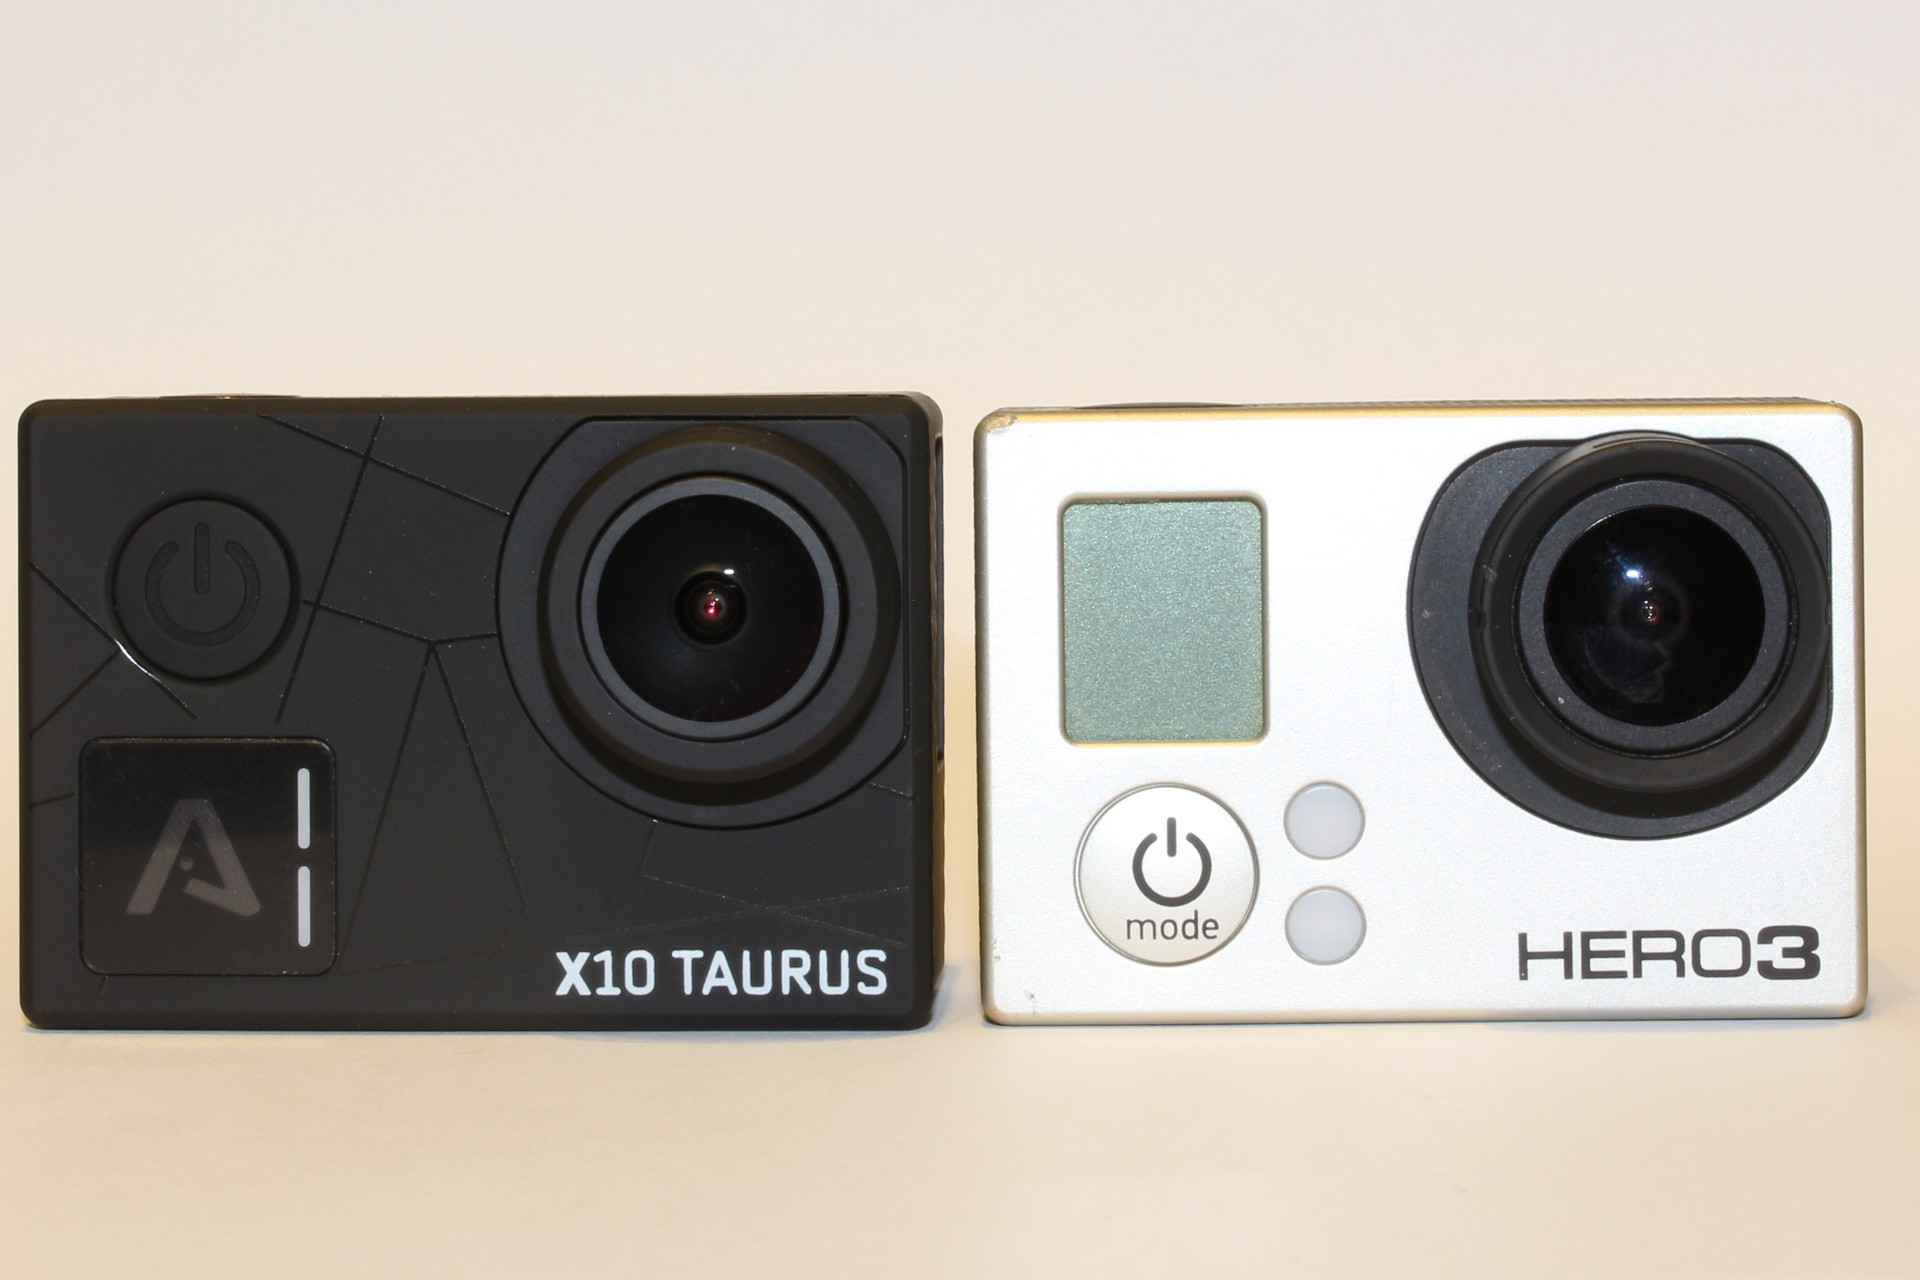 Lamax X10 Taurus vs GoPro Hero 3 Black